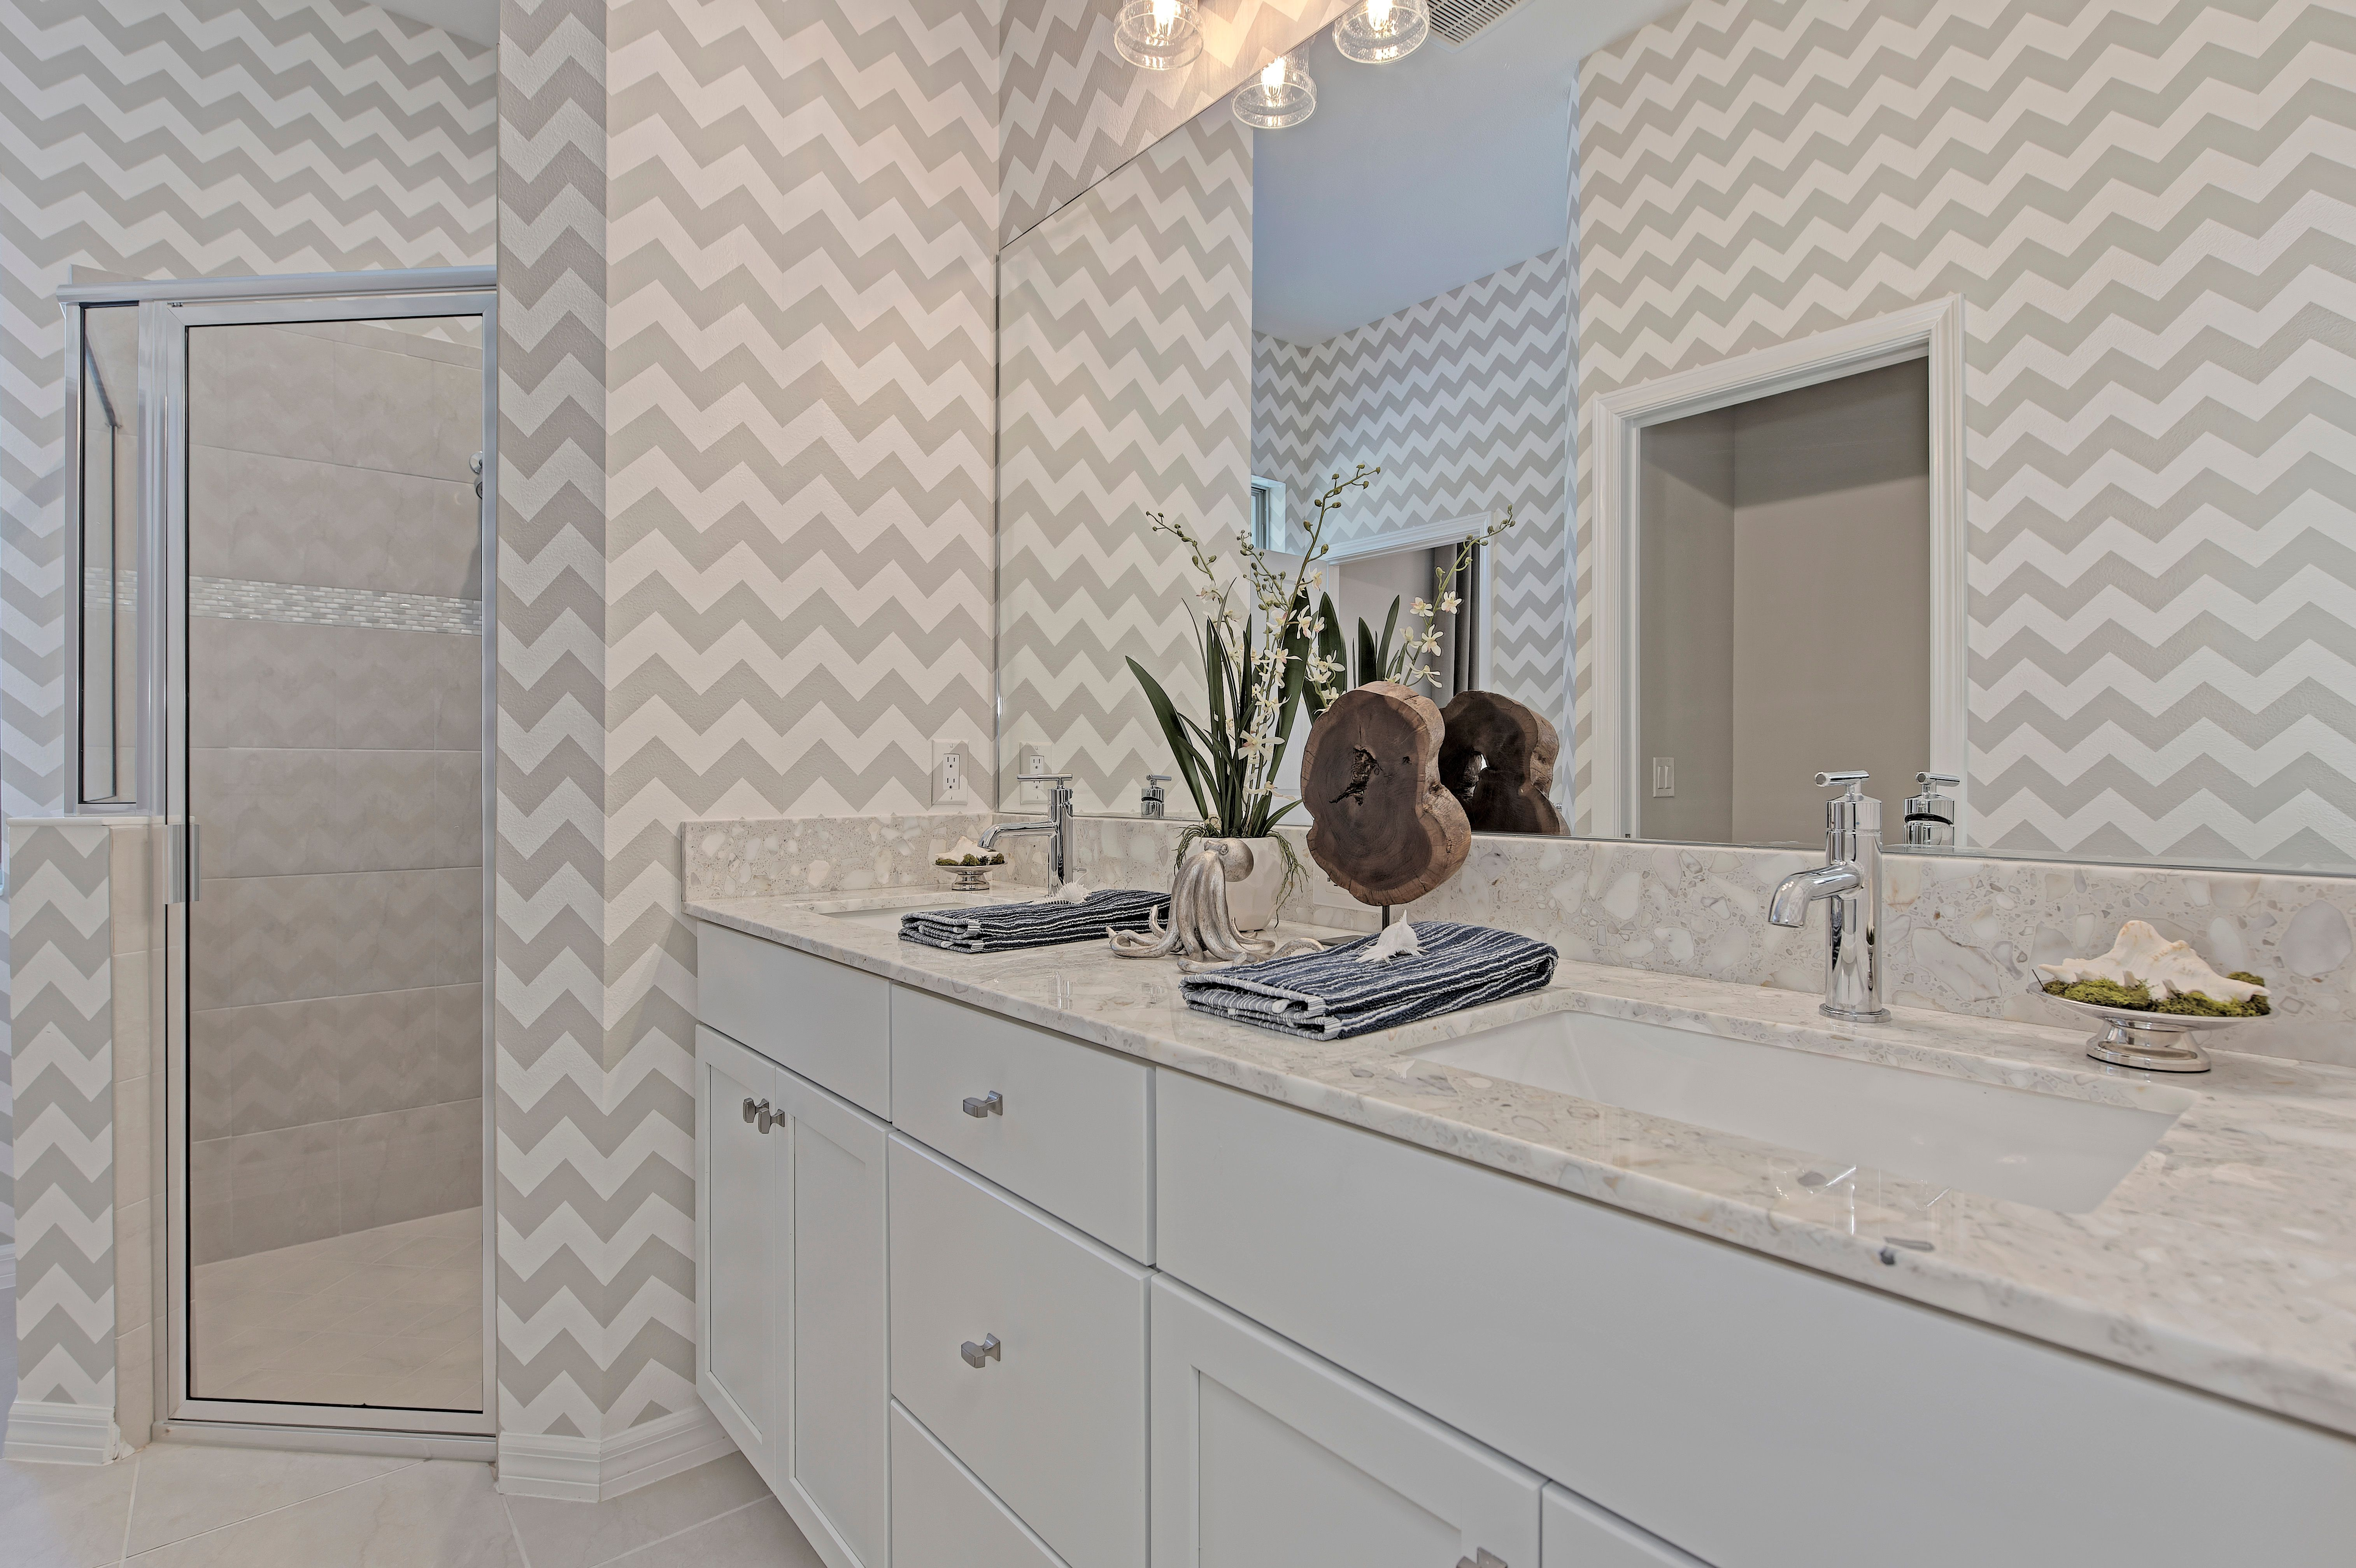 Bathroom featured in the Harbour By Medallion Home in Sarasota-Bradenton, FL